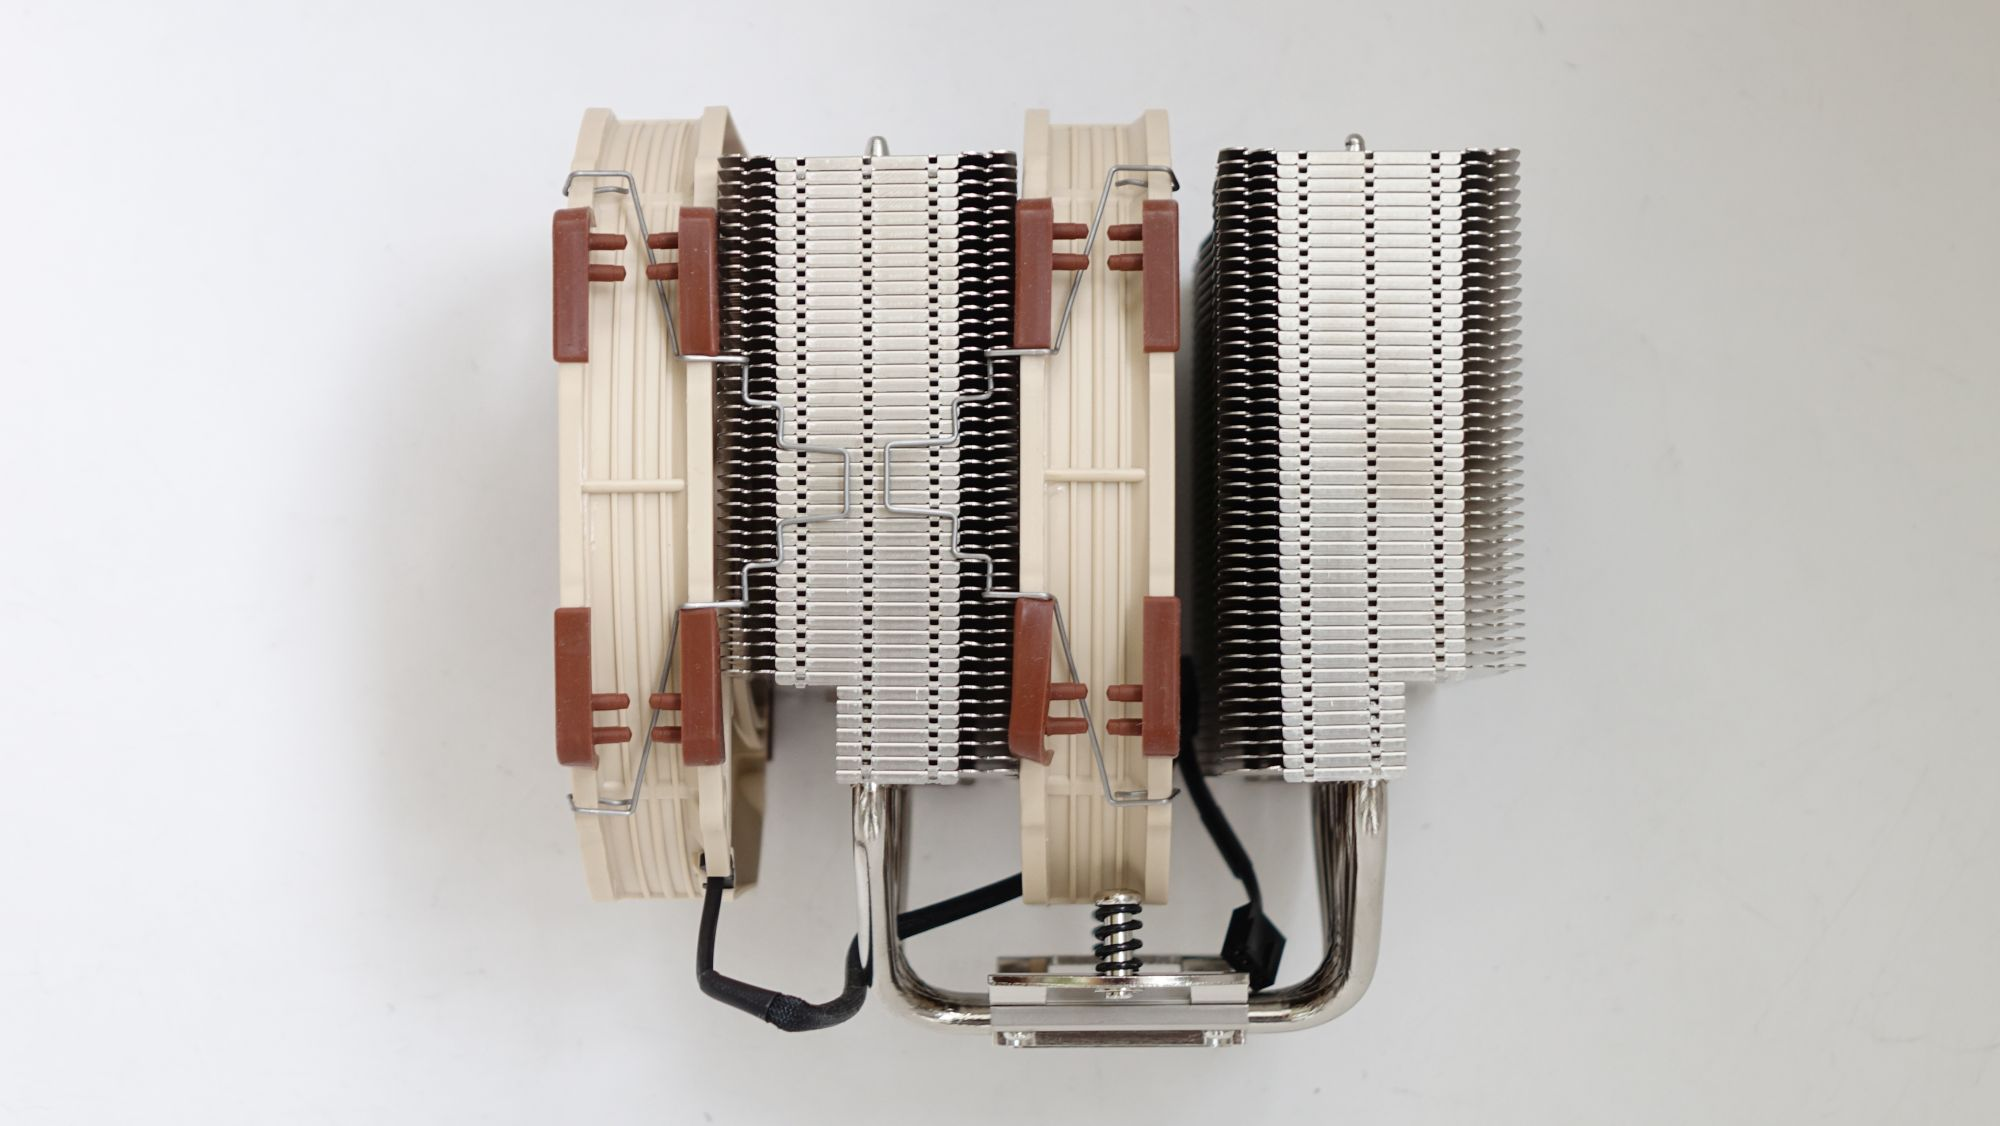 Noctua NH-D15 SE-AM4 профиль